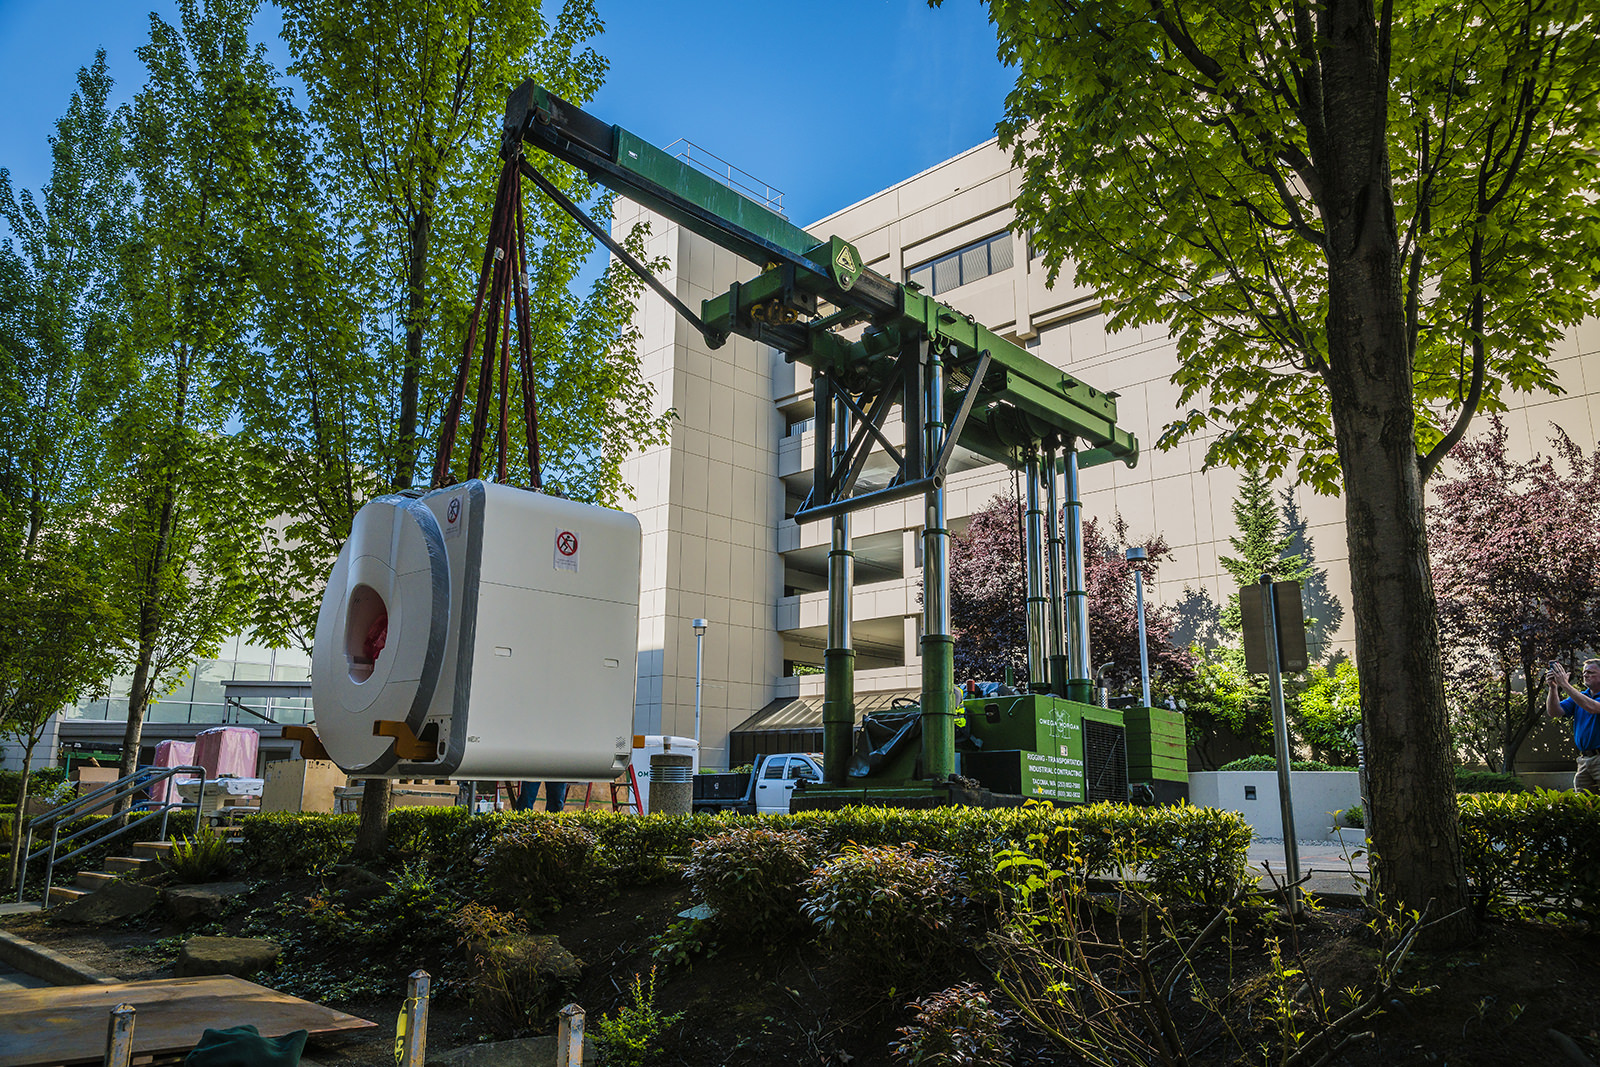 Tri-lifter with boom attachment installing MRI at Seattle hospital